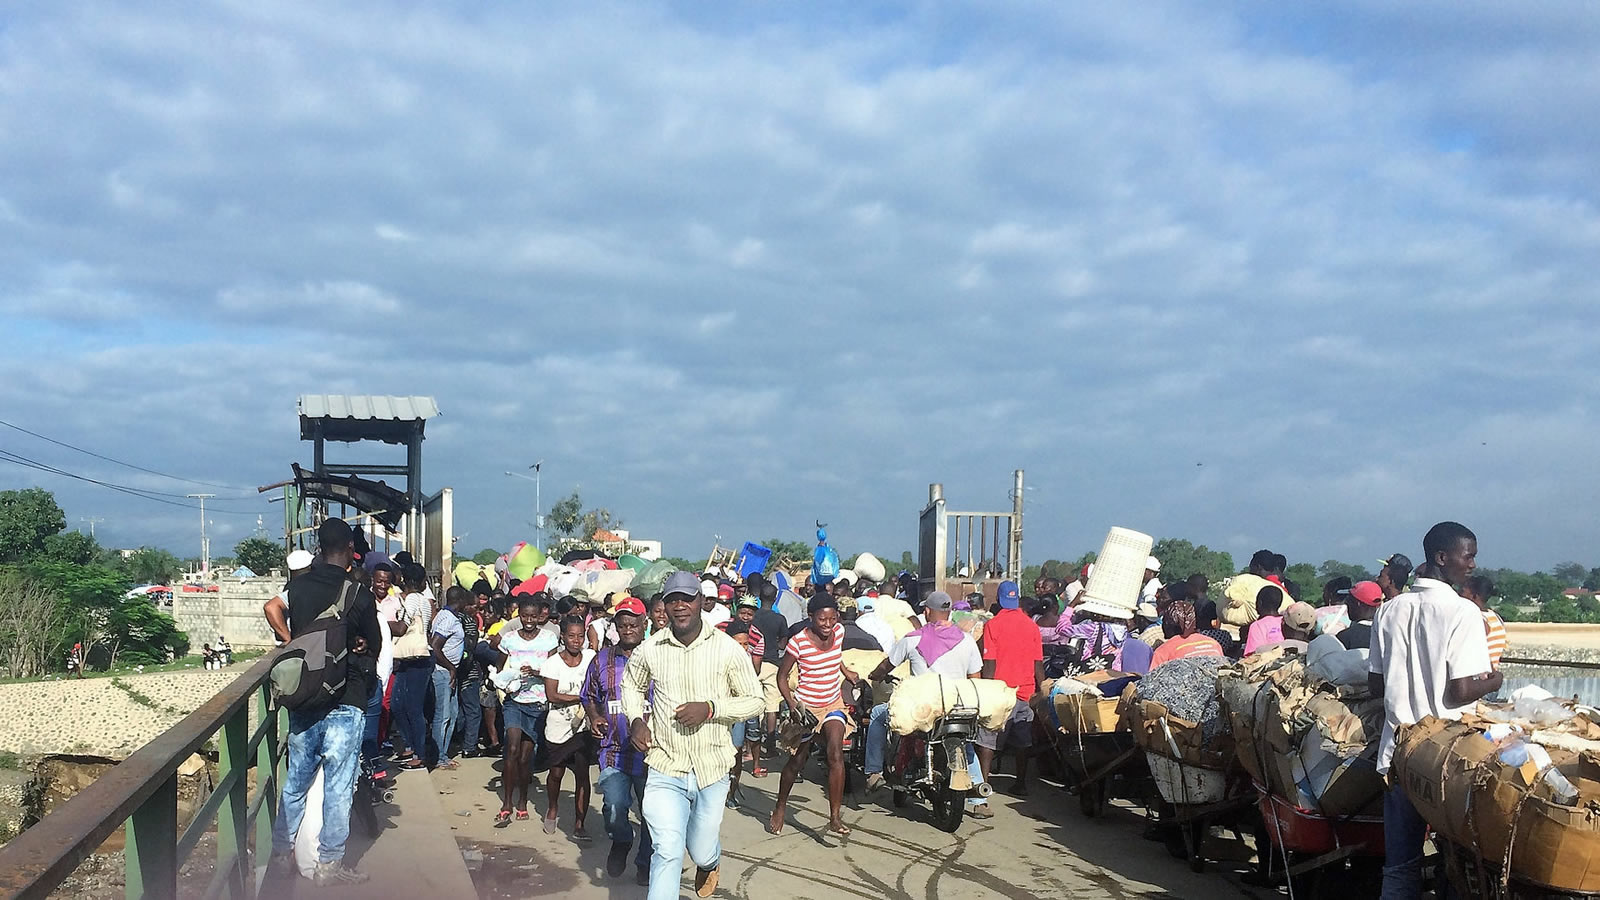 Crowd of People at a Dominican Republic-Haiti Border Crossing